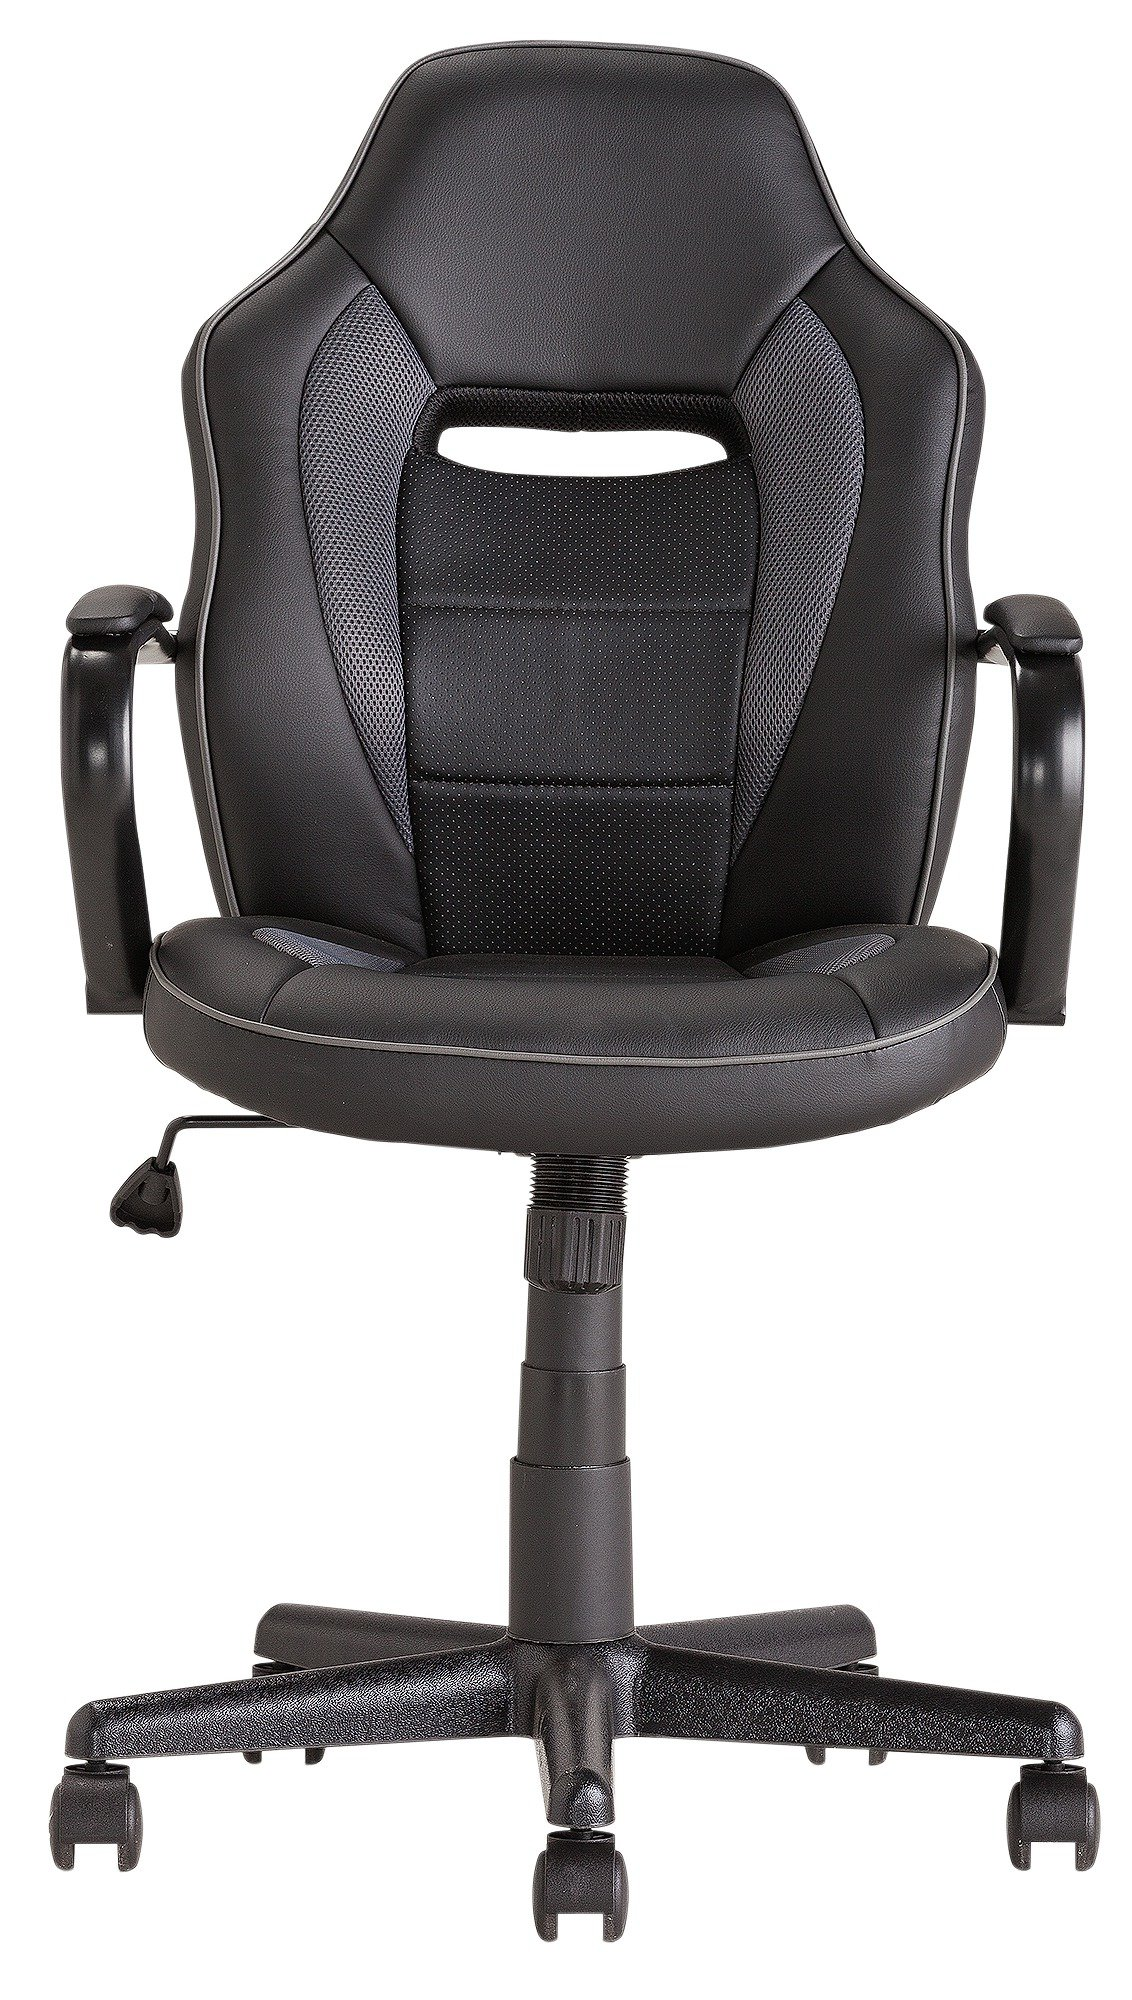 buy mid back office gaming chair - black at argos.co.uk - your